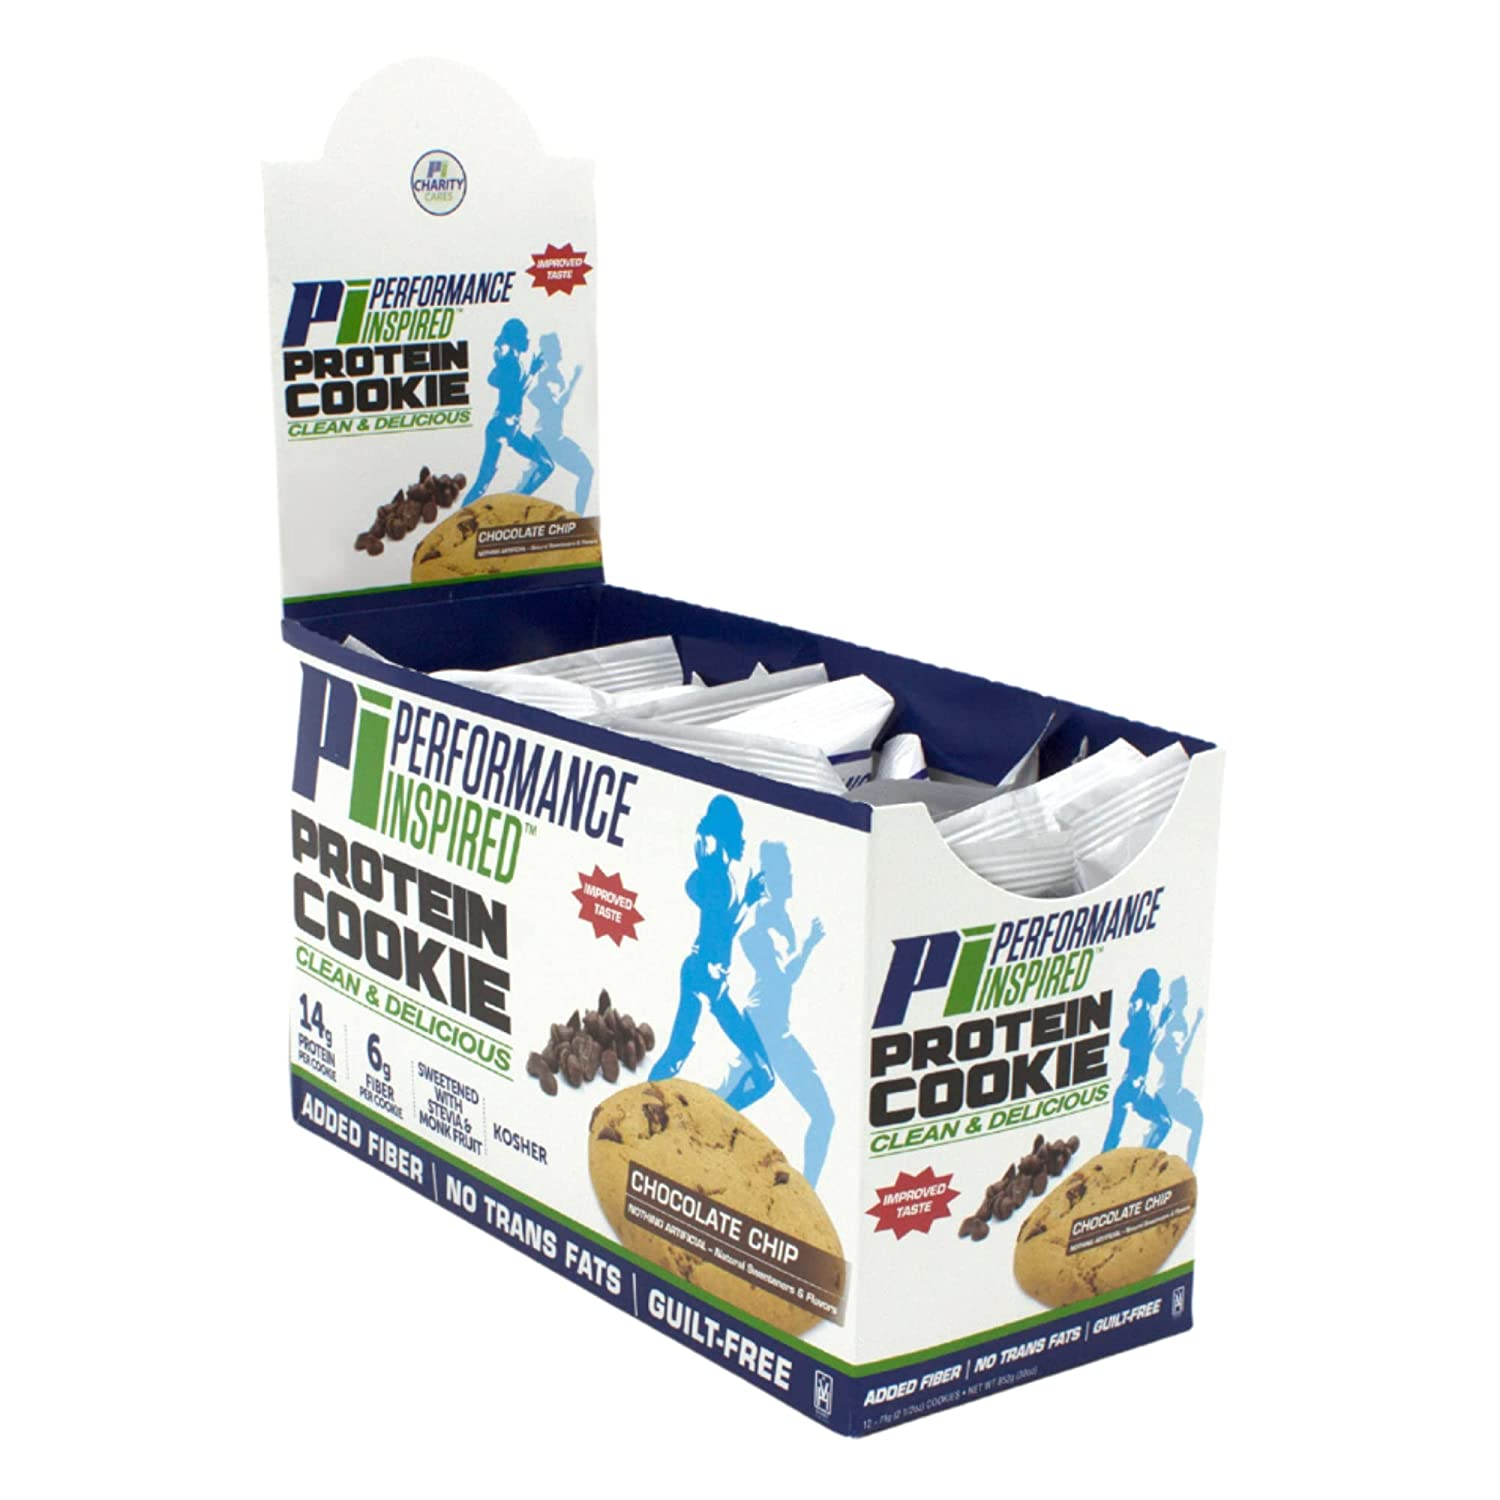 Performance Finally popular brand Inspired Nutrition Protein Cookie - 14 Contains: Lowest price challenge BIG